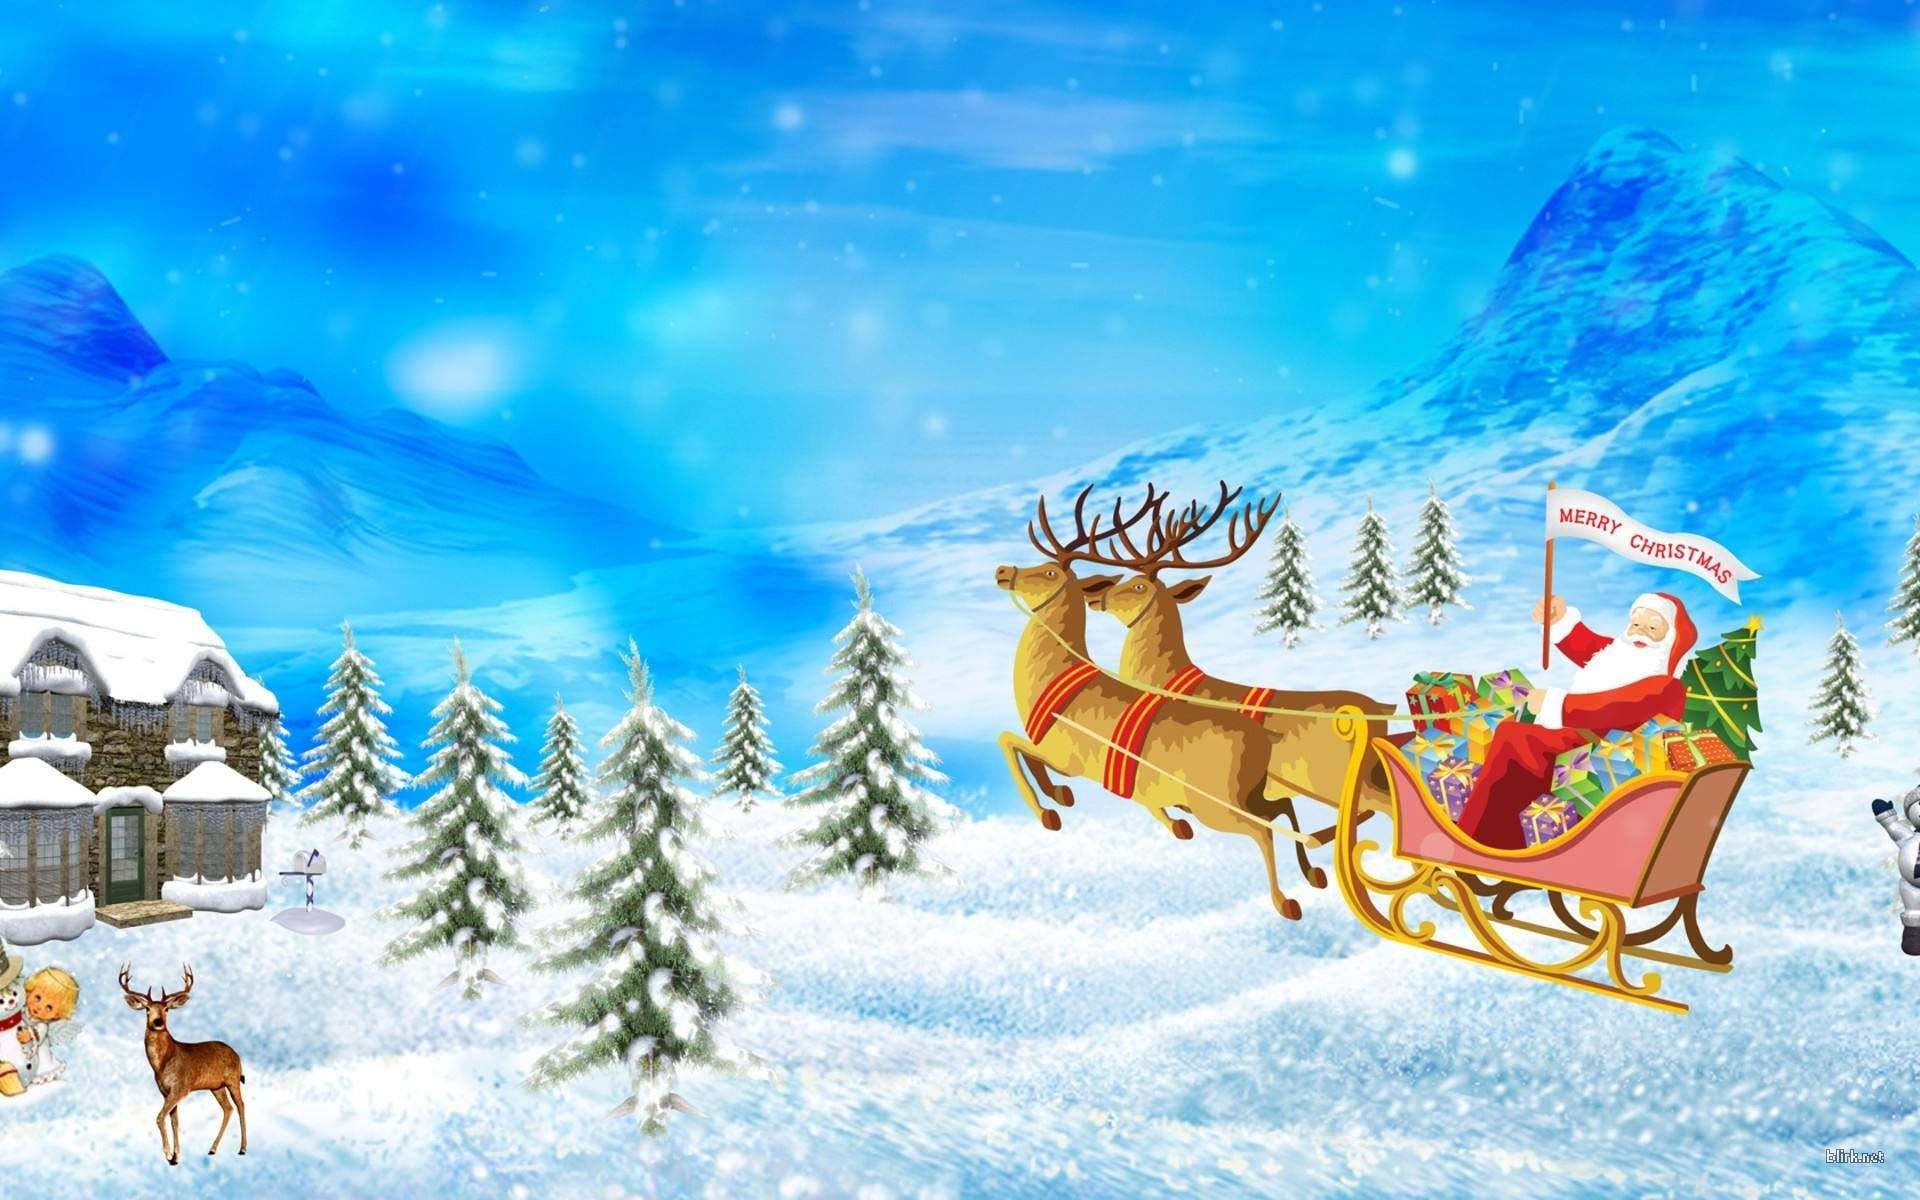 Santa Merry Christmas Merry Christmas Wallpapers And Use This Url - Paisajes-navideos-infantiles